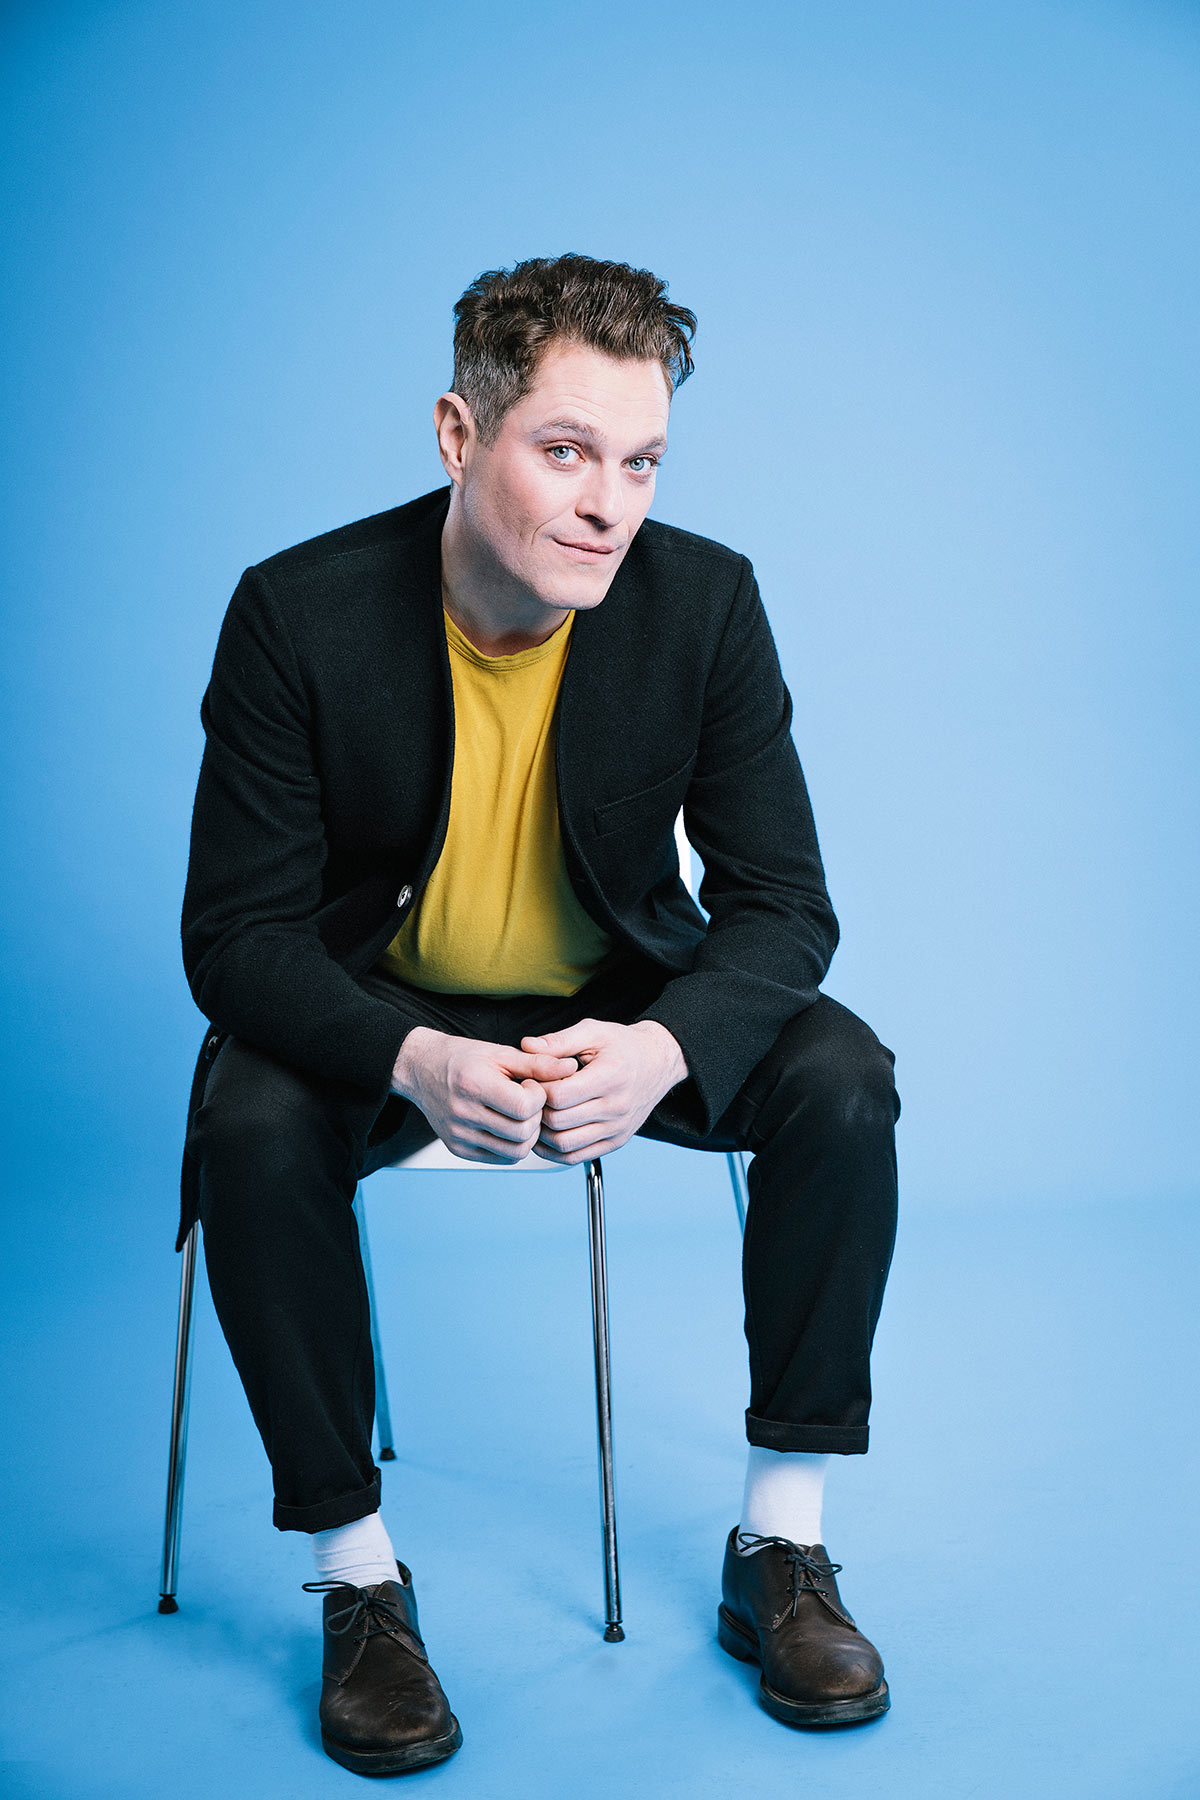 Mathew Horne Photographed for The Times by Michael Clement